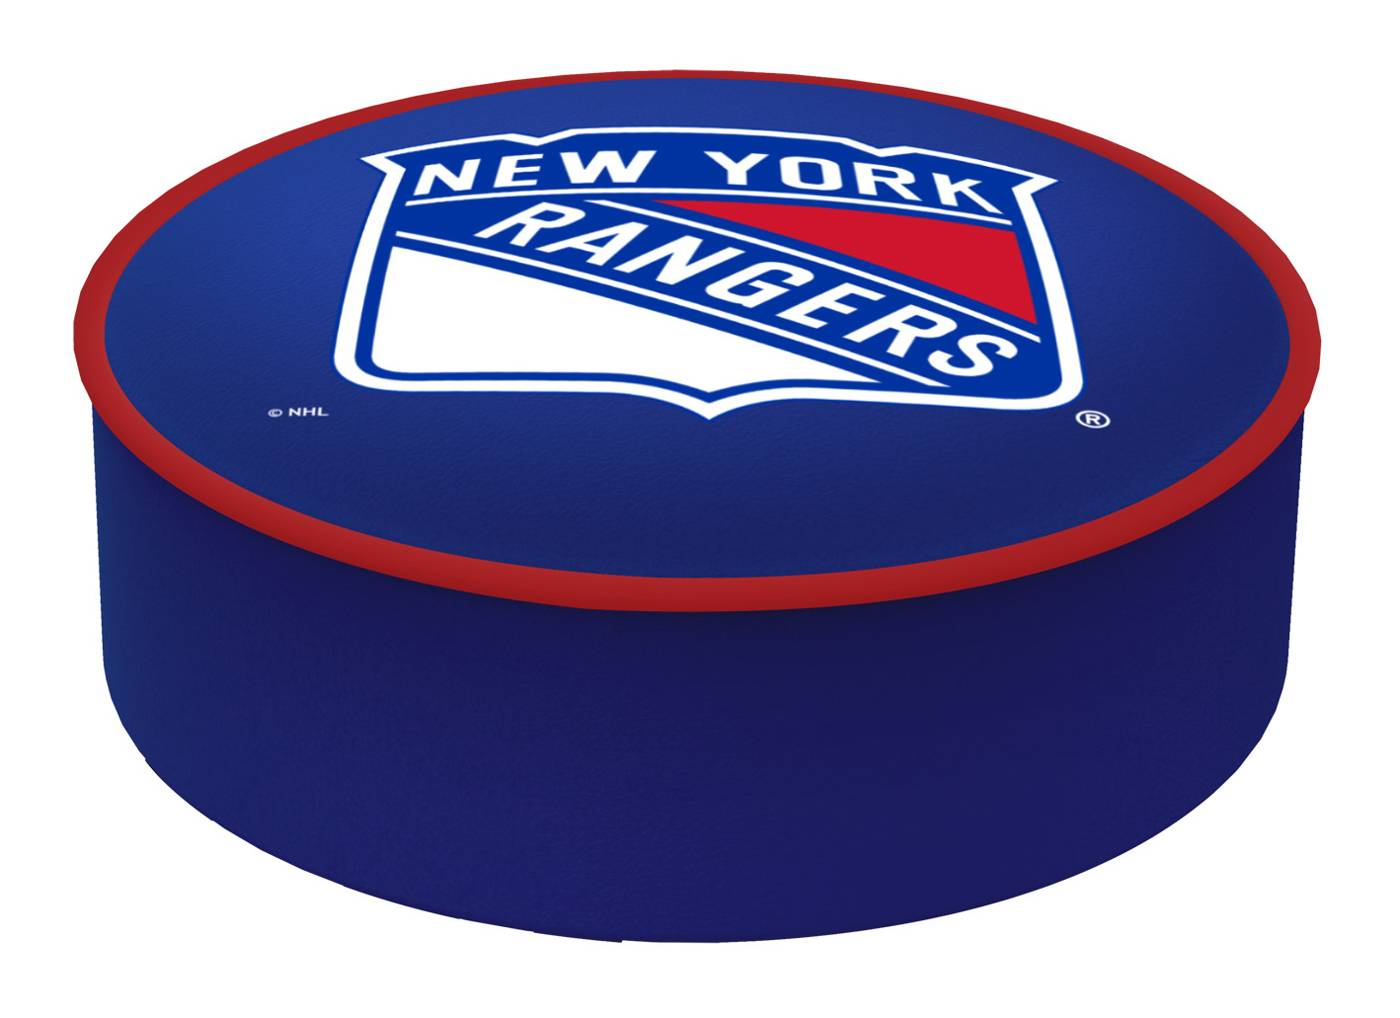 New York Rangers Bar Stool Seat Cover : new york rangers bar stool seat covermainProductImageFullSize from www.sportsunlimitedinc.com size 1000 x 833 jpeg 73kB